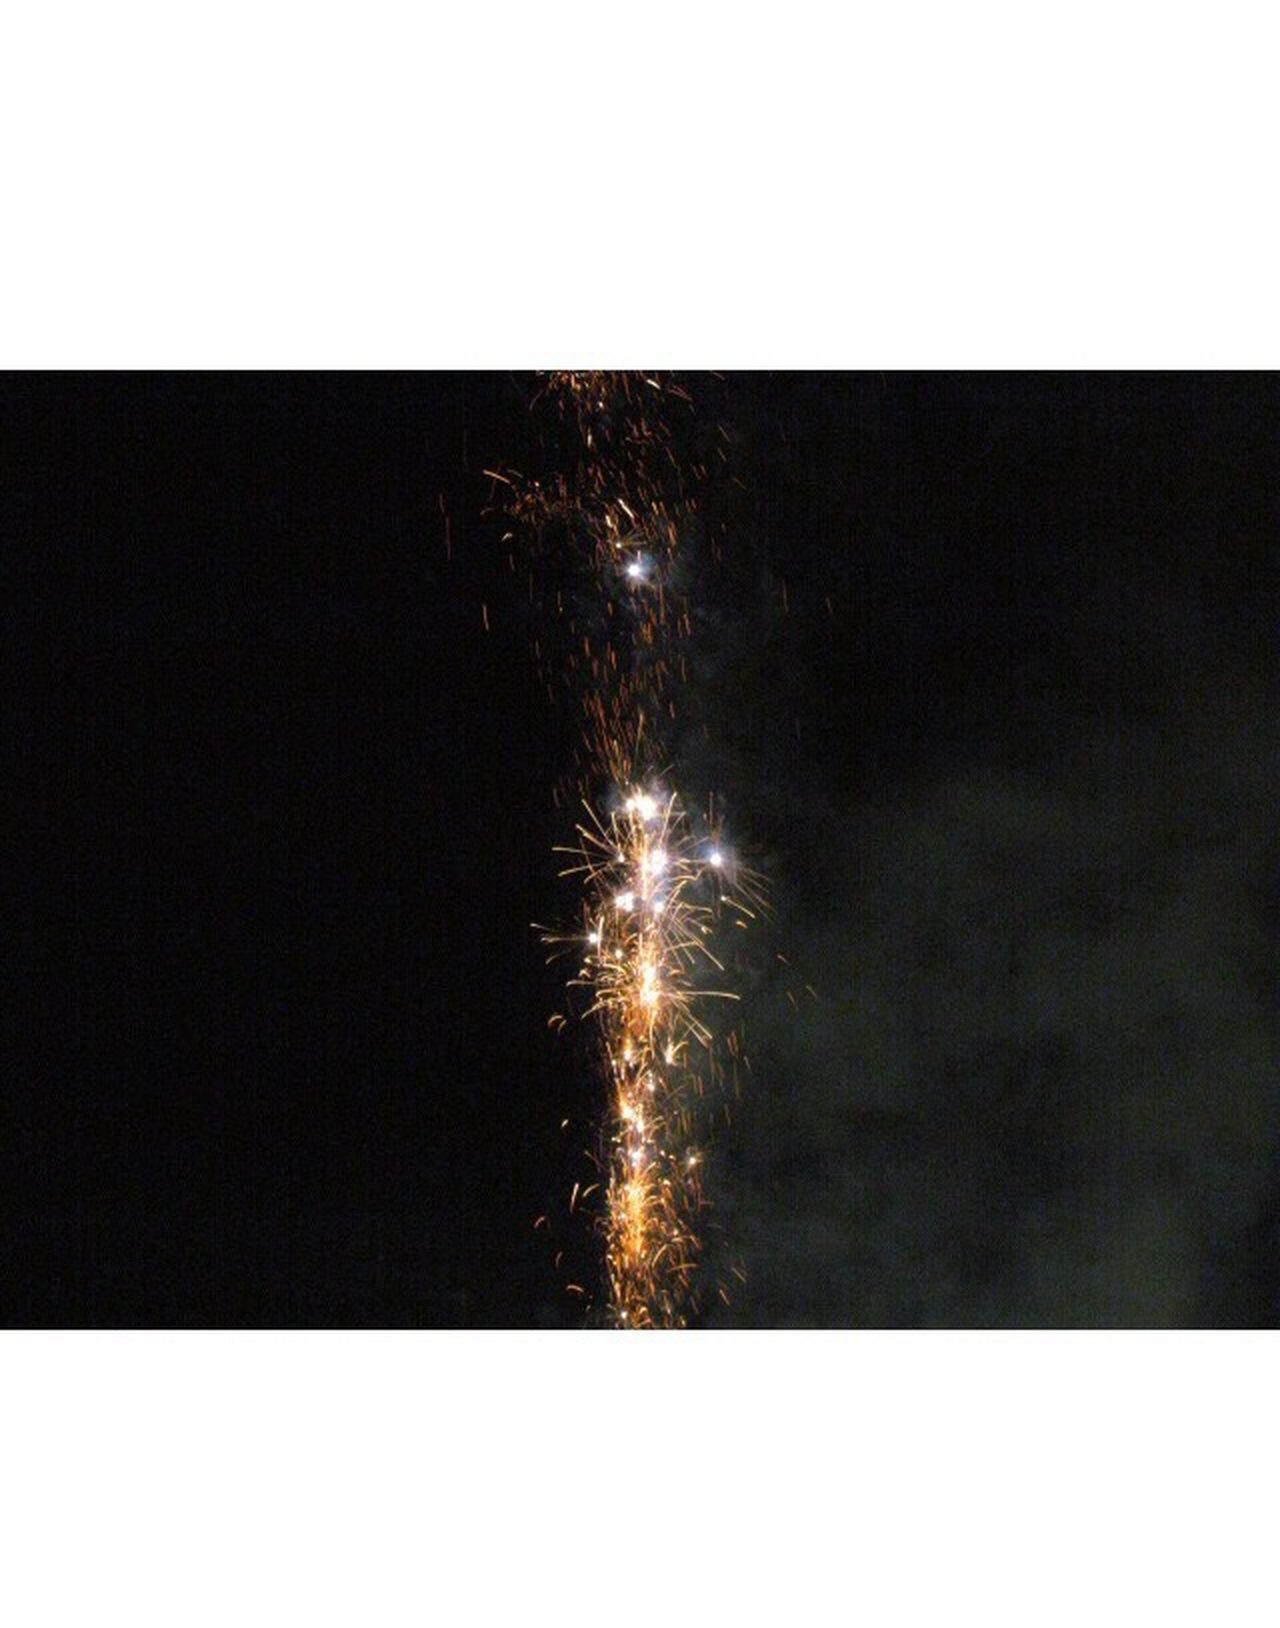 Magical night with fireworks Sparks Glowing Celebration Night Fireworks Lights Nightphotography